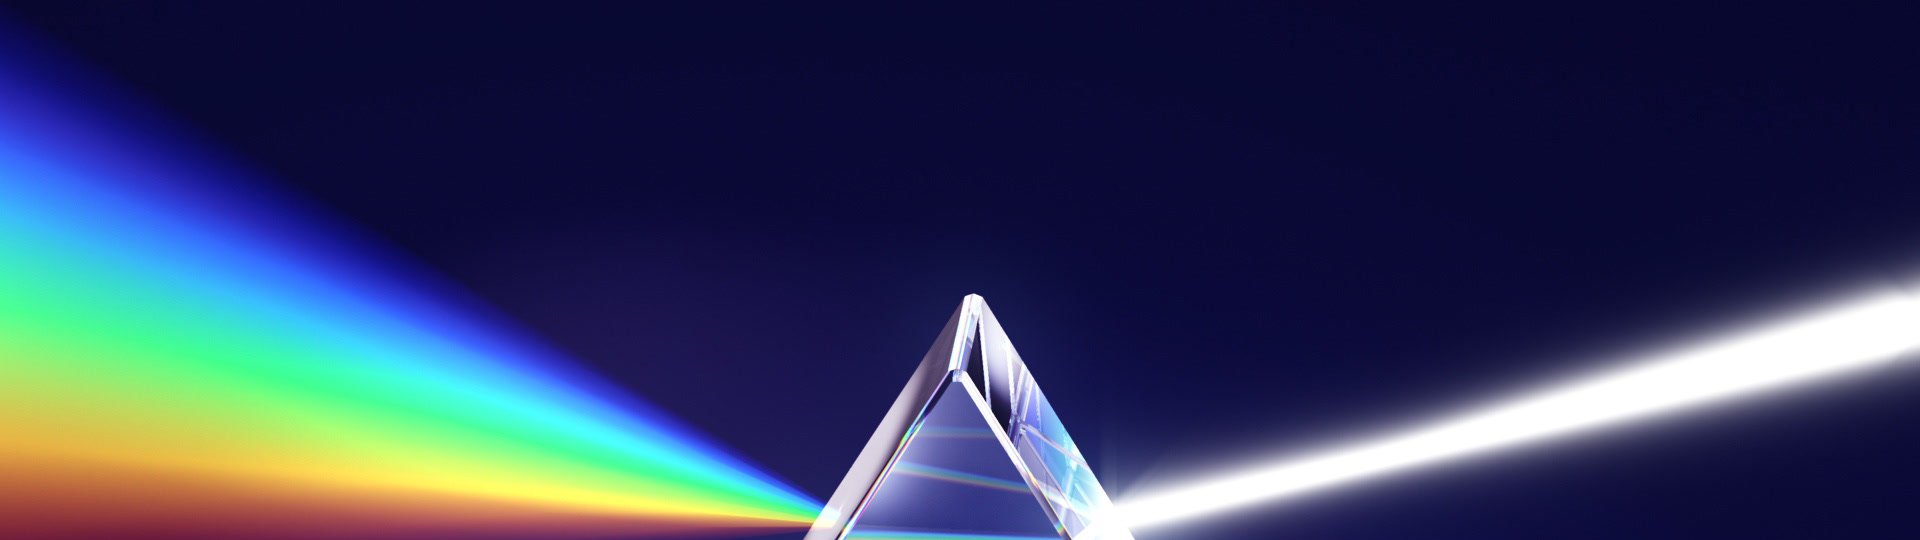 Prism and light dispersion LOOPED | Prism - light dispersion, seamless loop, HD1080p  - ID:6637